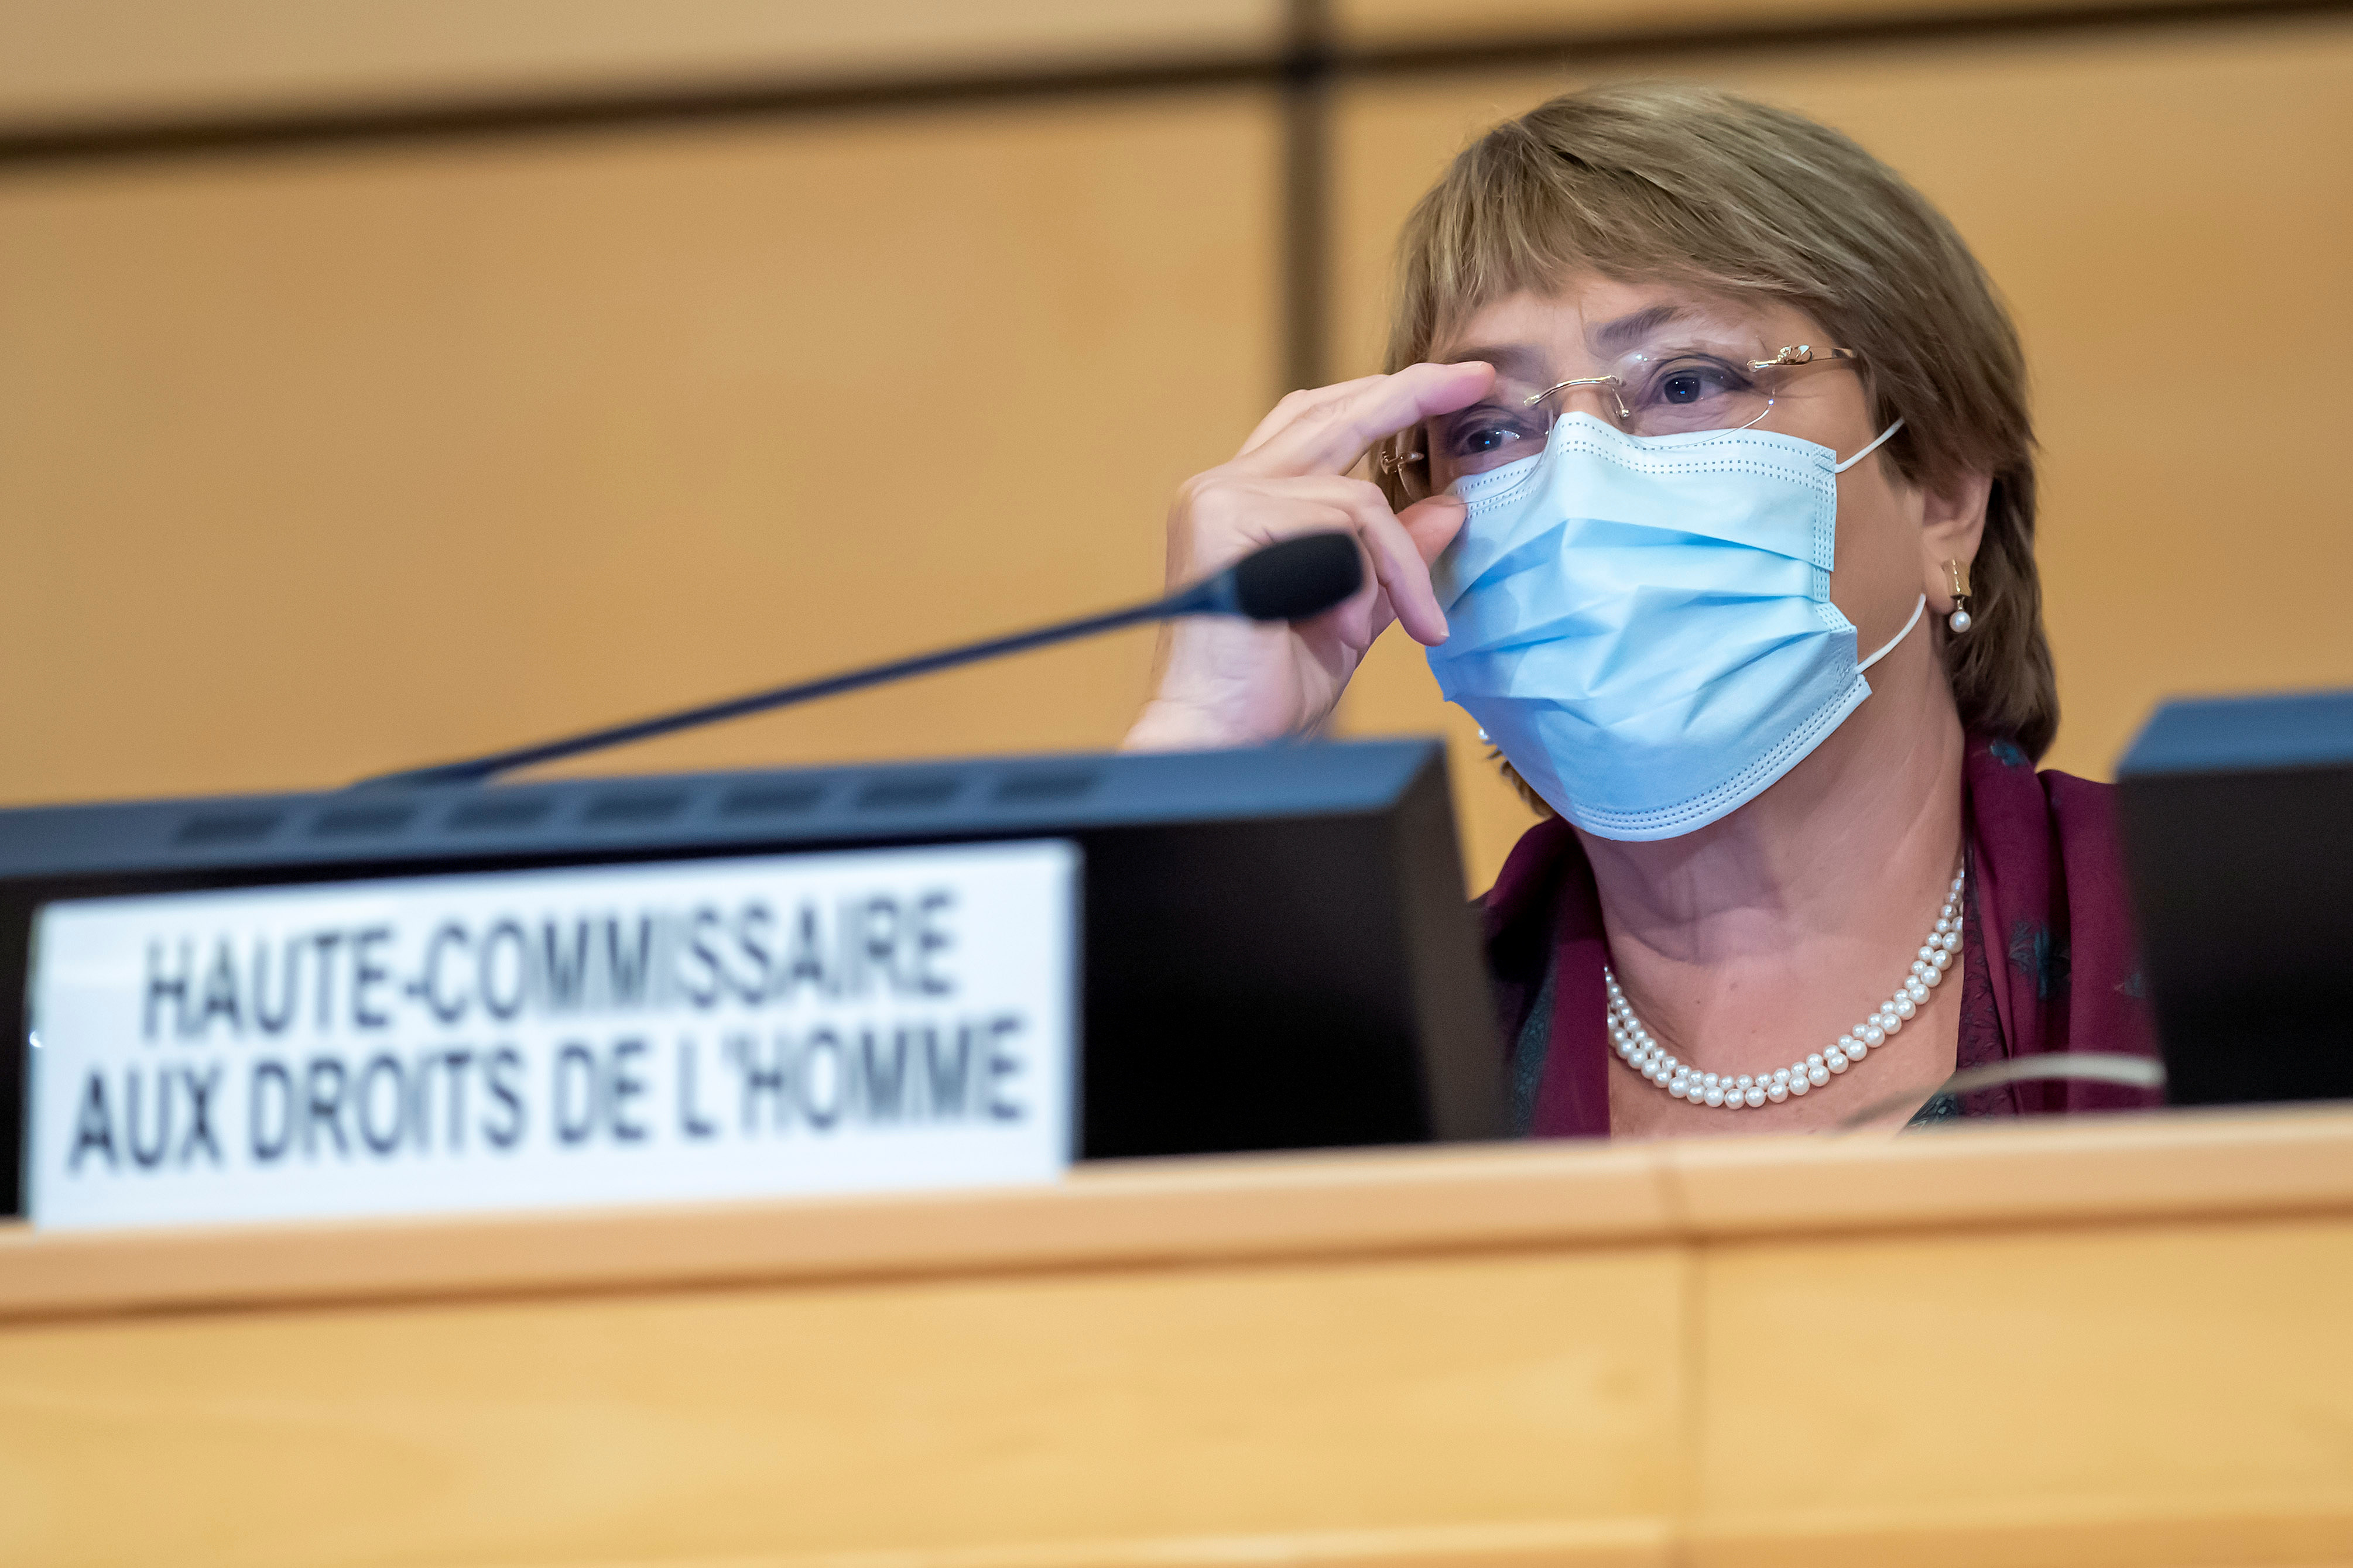 United Nations' High Commissioner for Human Rights Michelle Bachelet during a United NAtions Conference on Human Rights